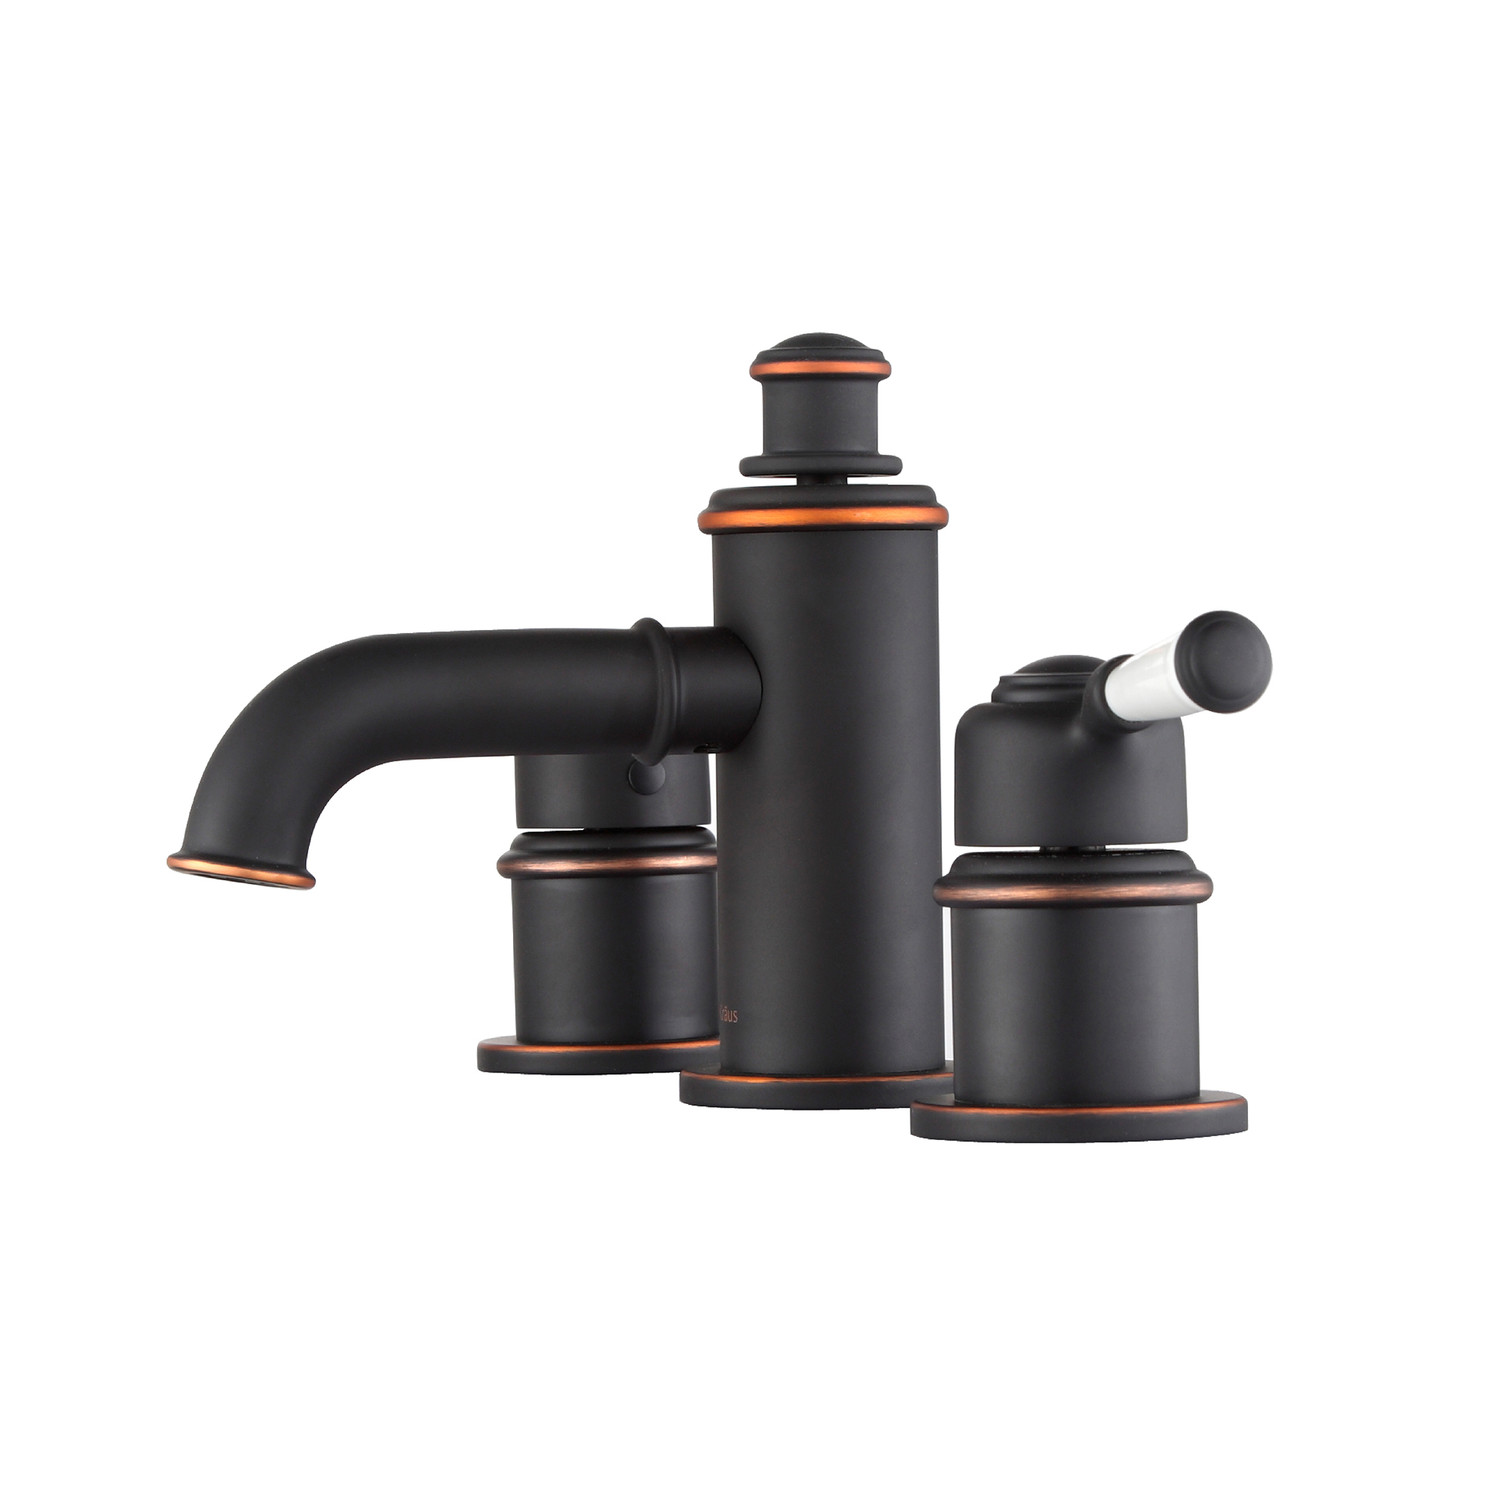 8 Widespread Sink Faucet Transitional Or Modern